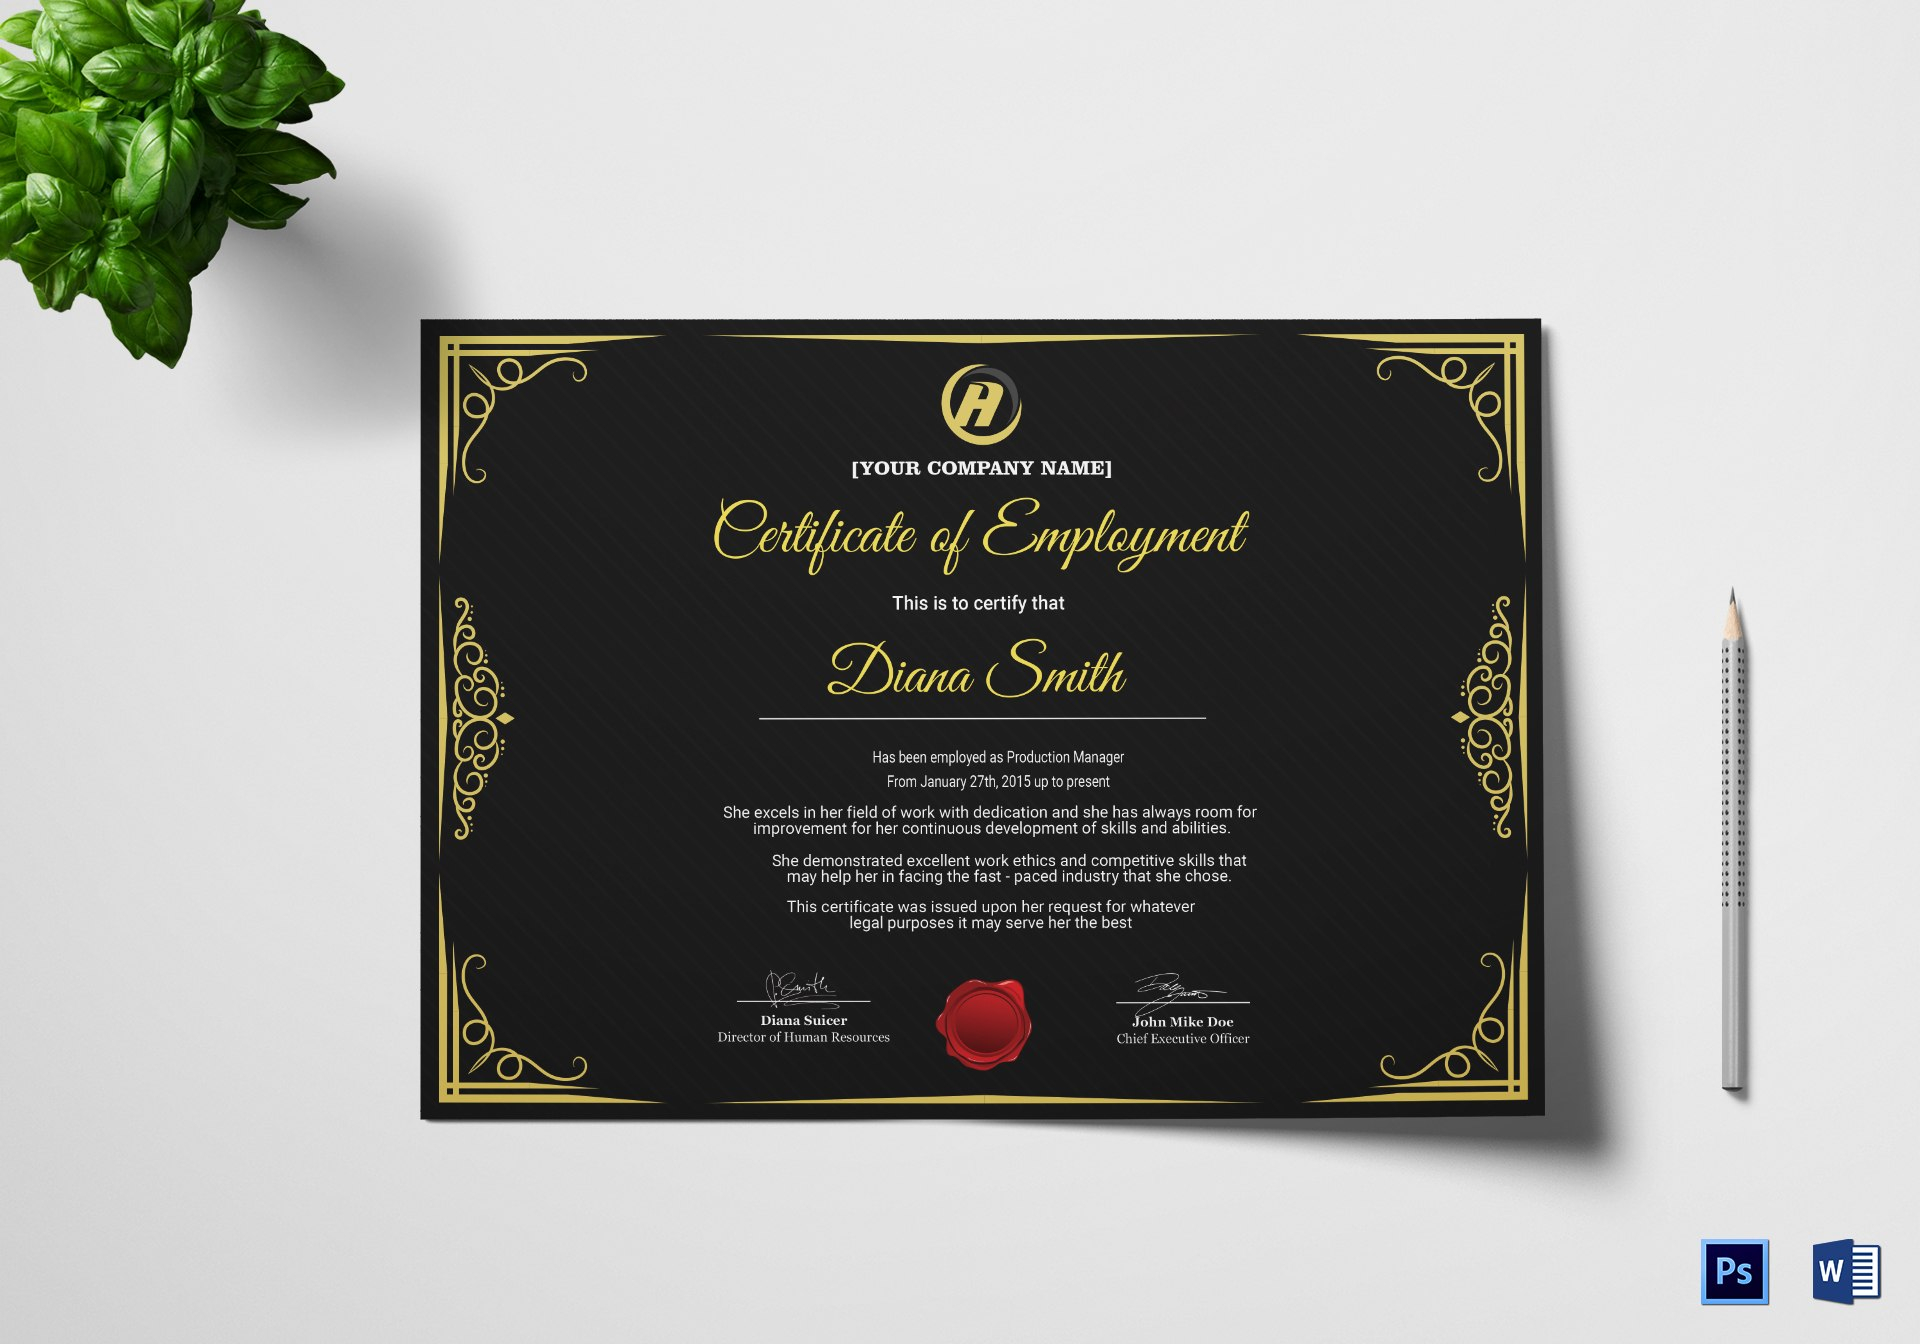 Qualified Employment Certificate Design Template In Psd Word In Commemorative Certificate Template